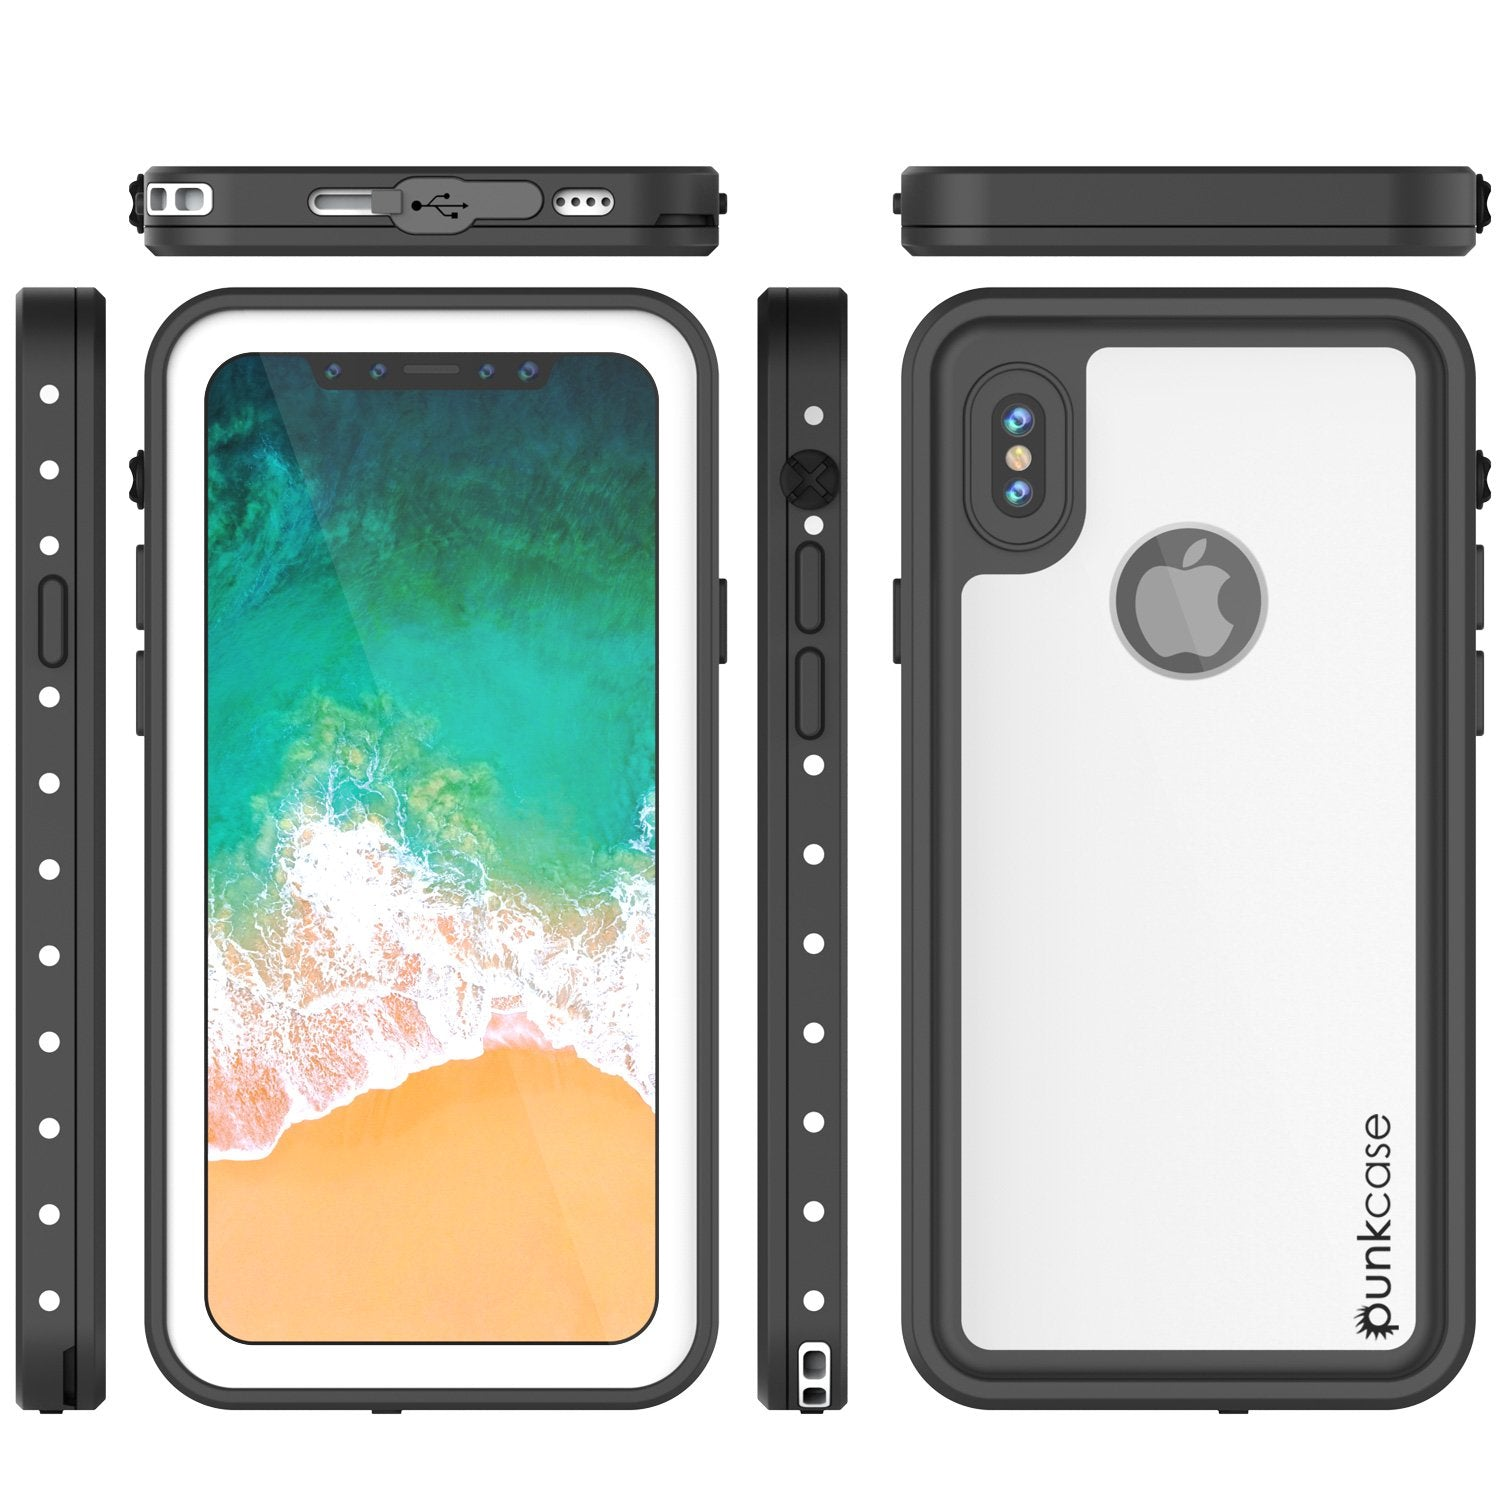 iiPhone X Plus Waterproof Case, Punkcase StudStar Series Cover [White]